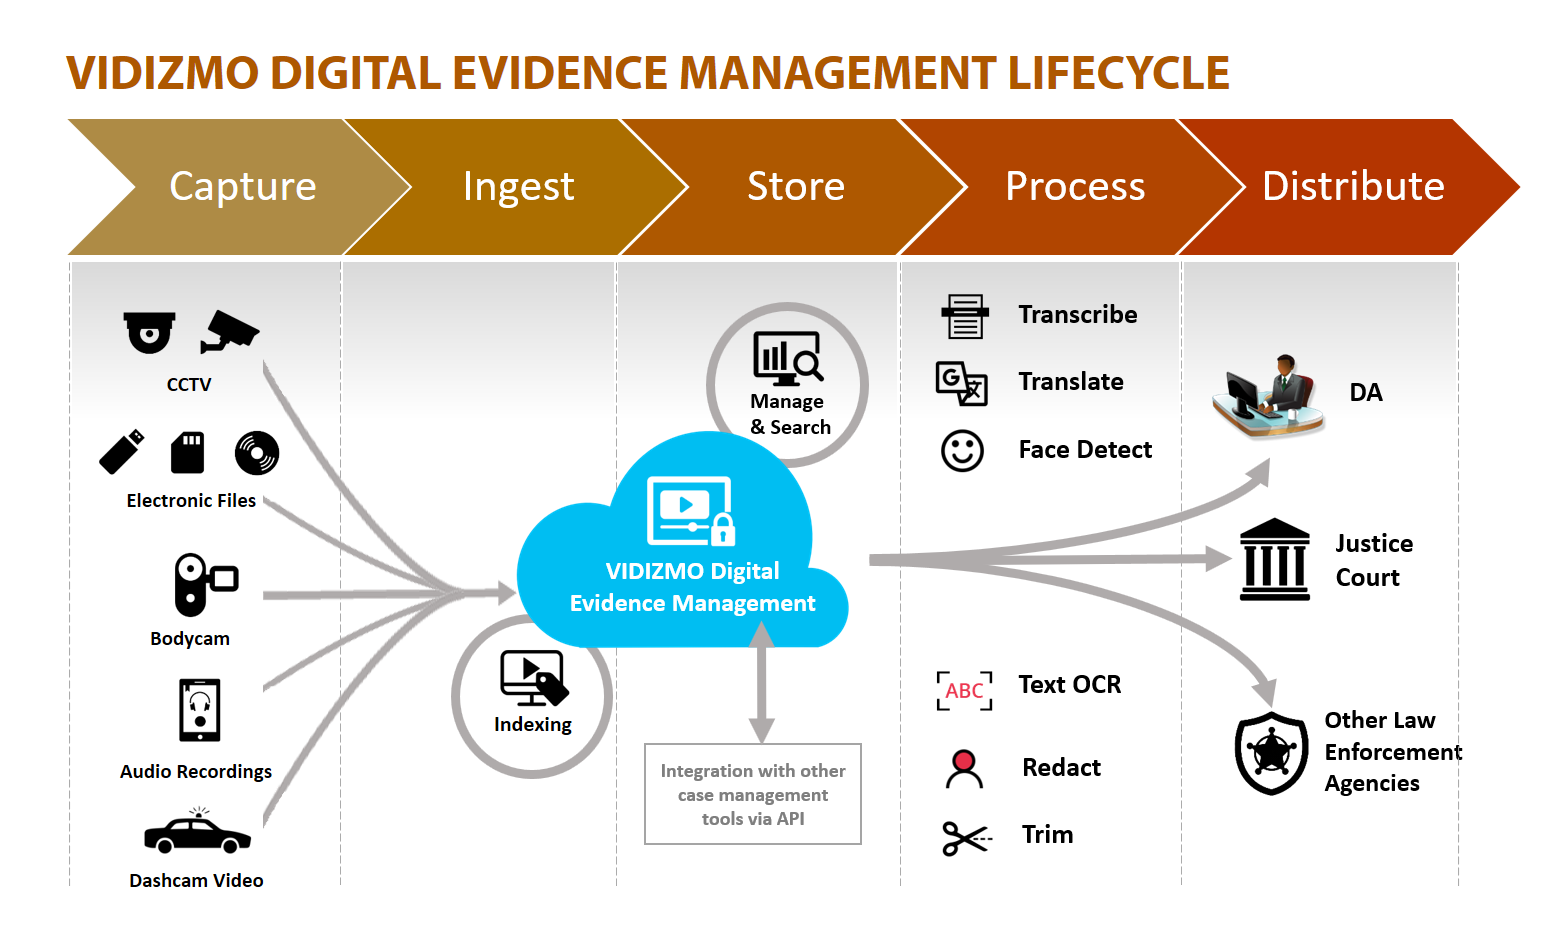 VIDIZMO digital evidence management lifecycle